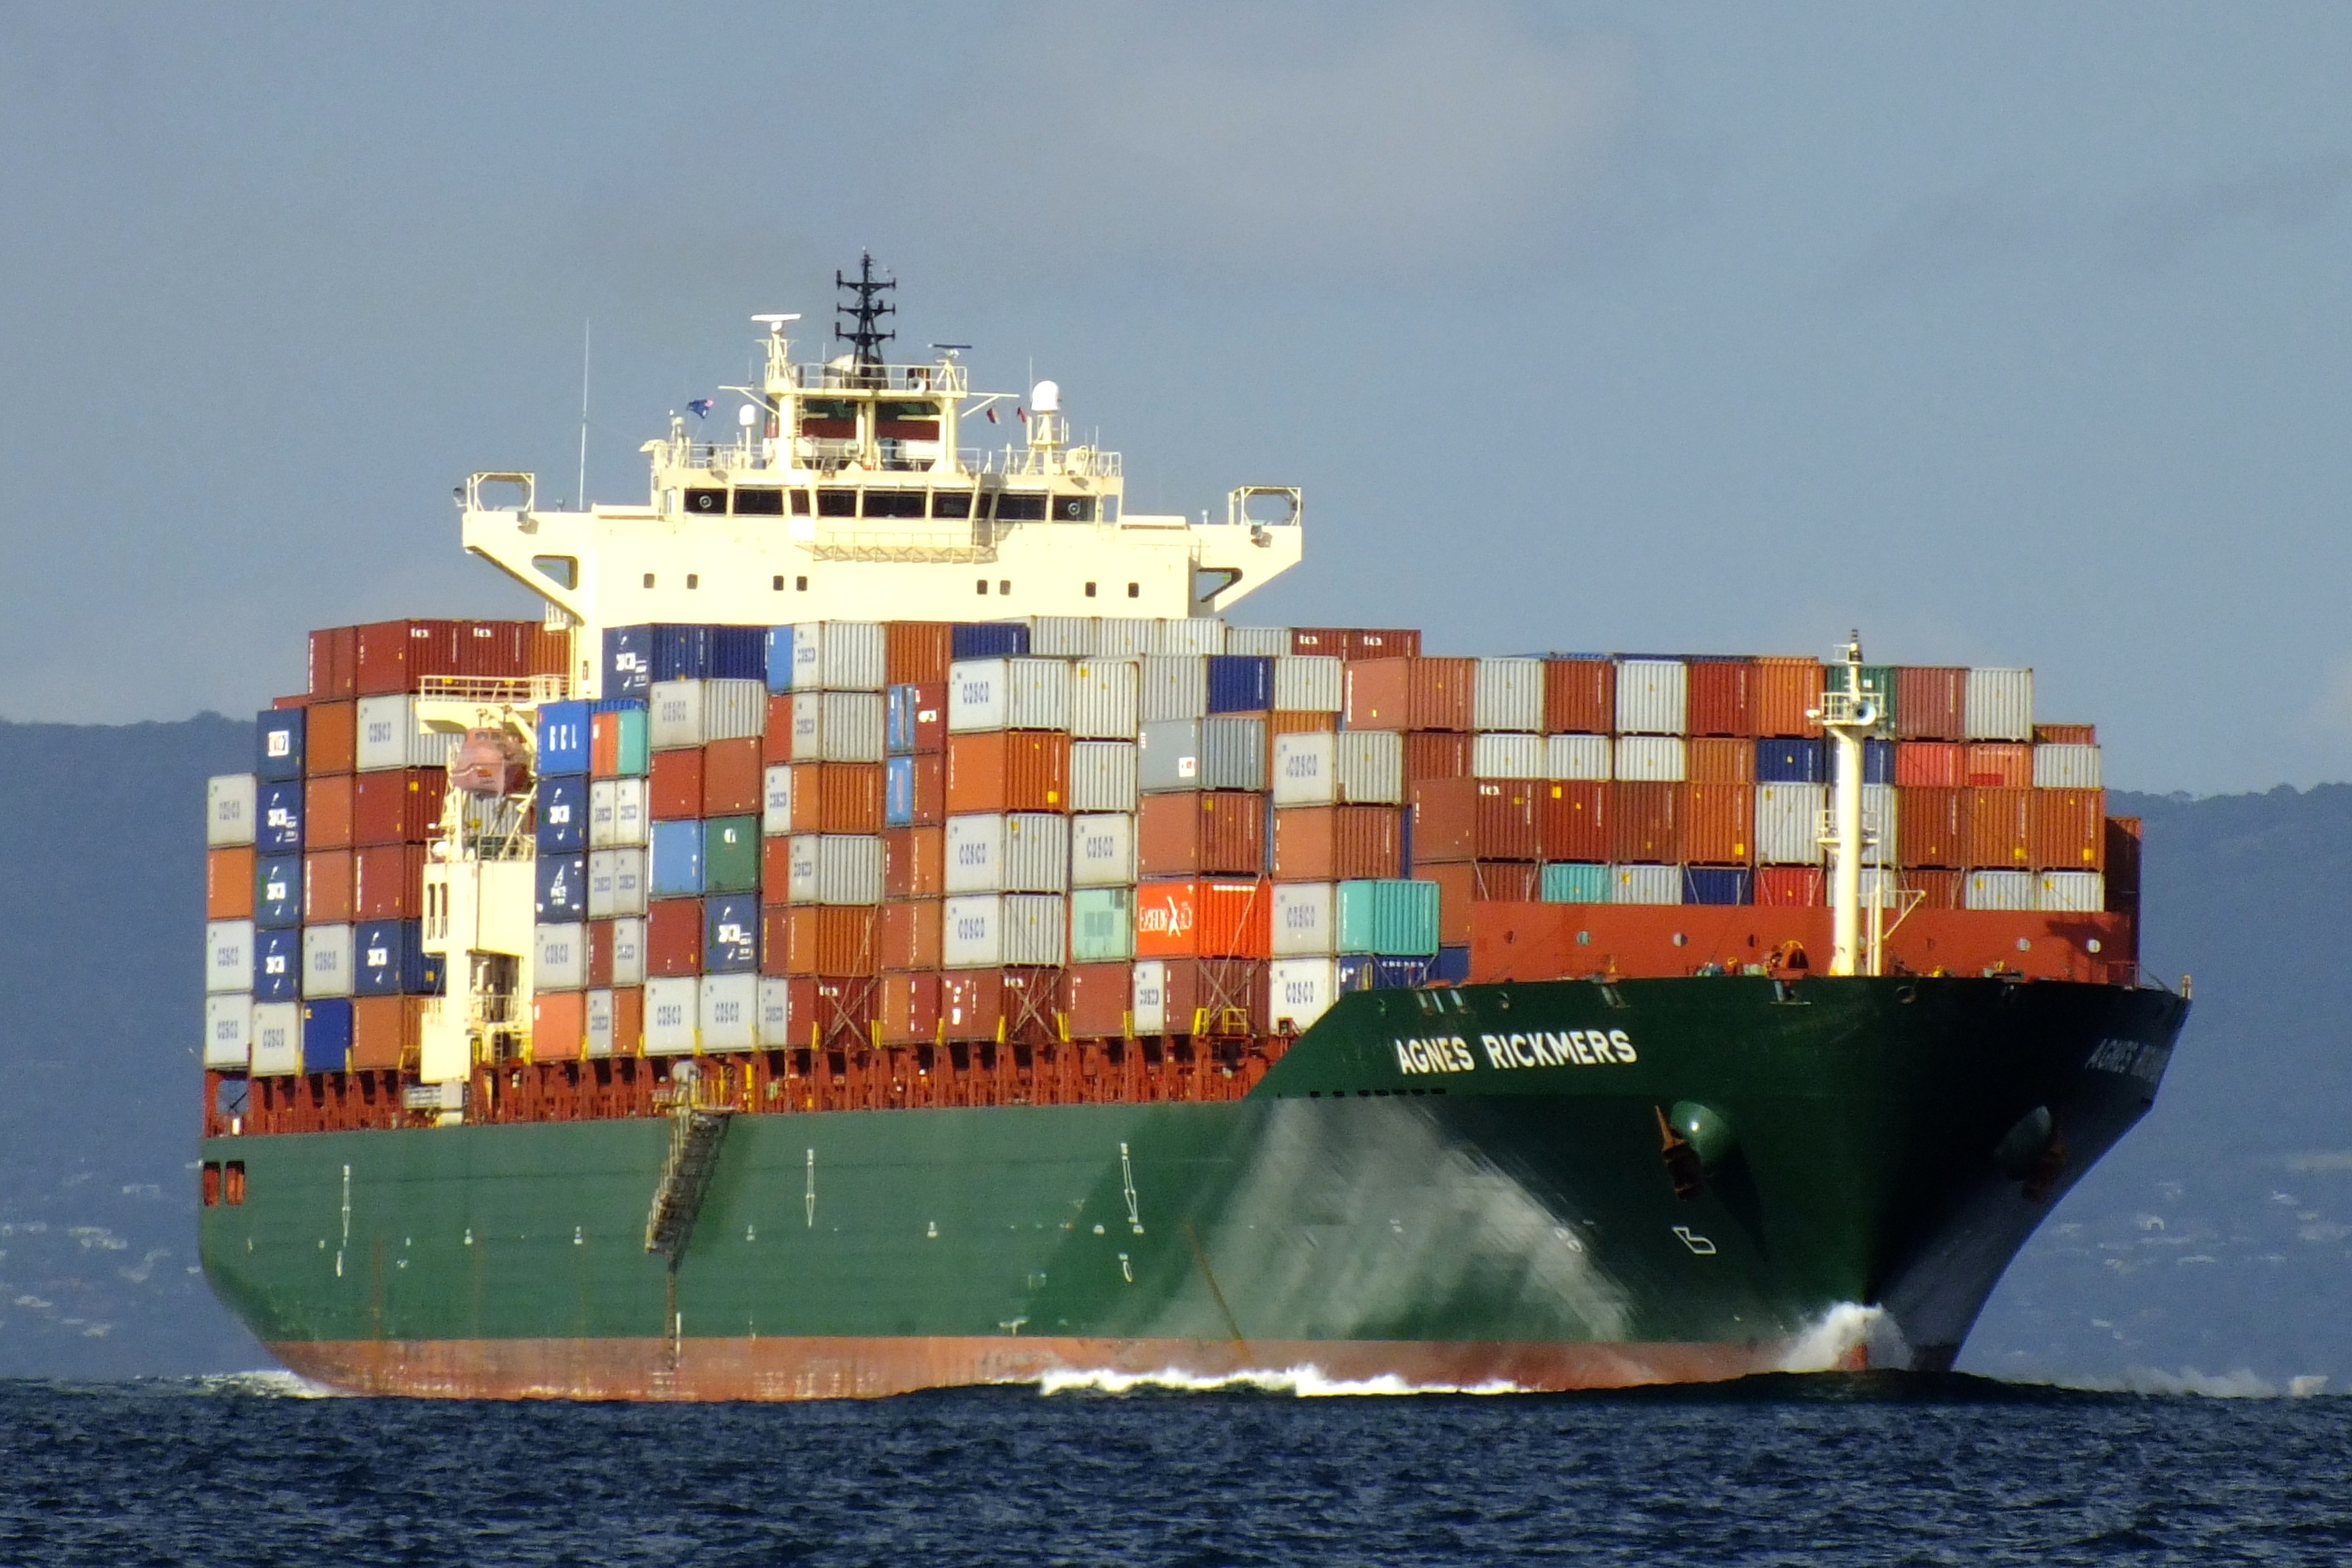 agnes_rickmers-9289972-container_ship-8-163734